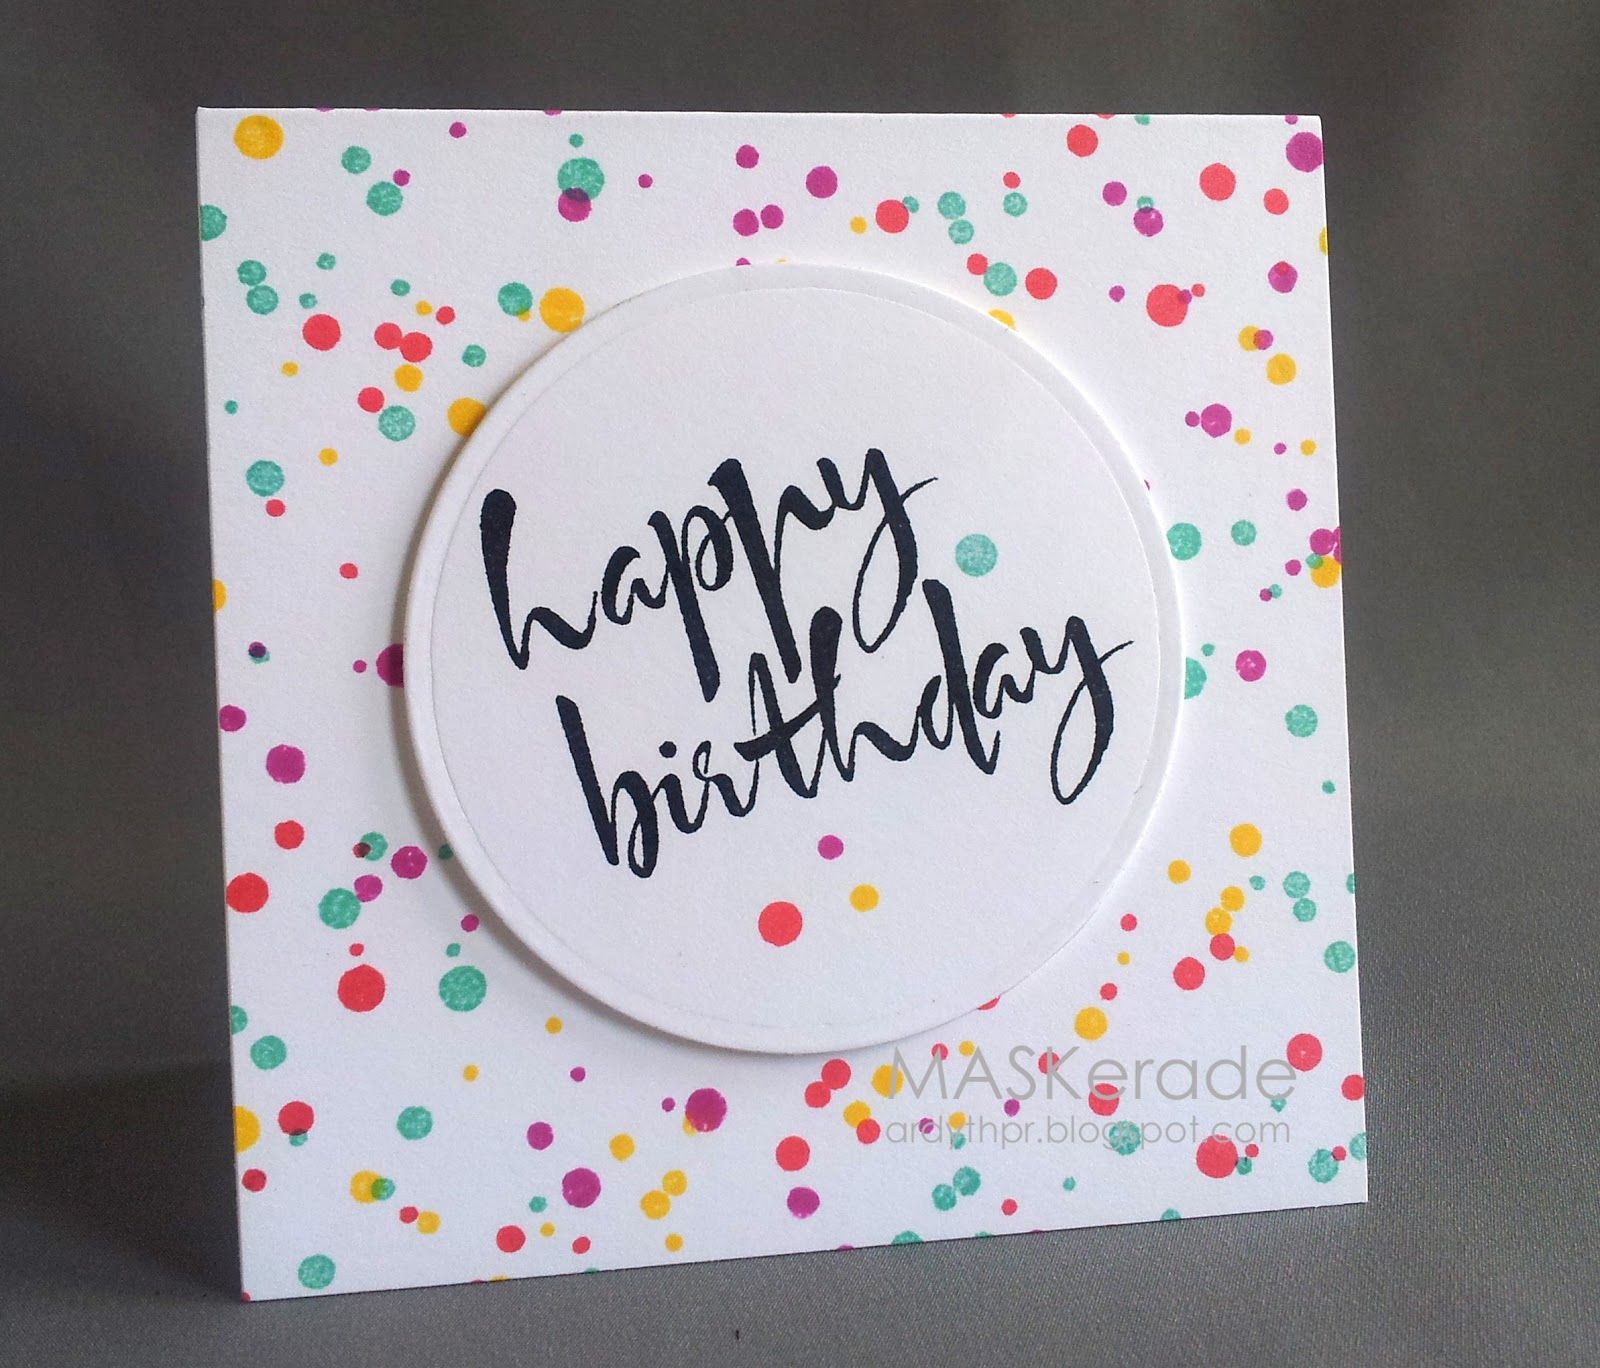 Maskerade I Heart Papers Gd Post 7 Casology 111 Under Simple Birthday Cards Birthday Cards Diy Birthday Card Drawing